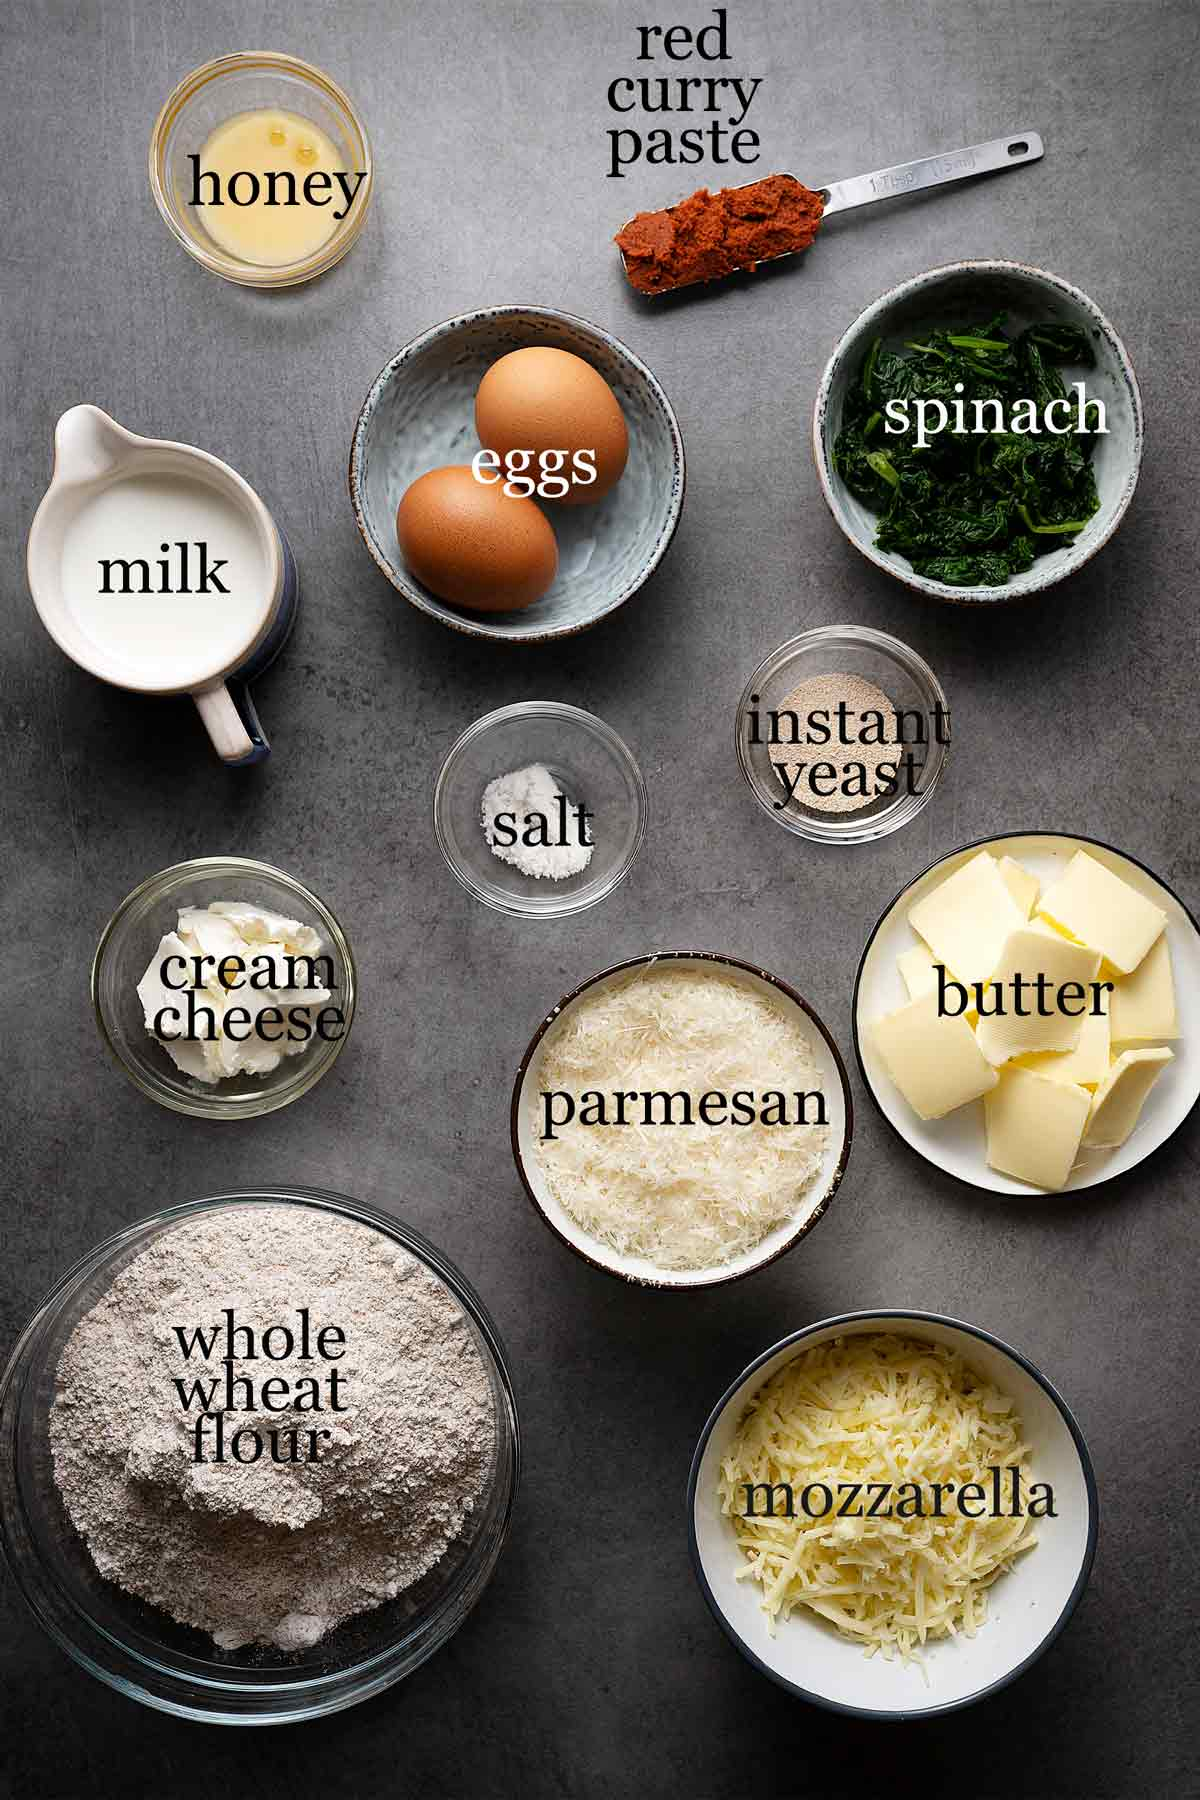 Ingredients for skillet pull apart whole wheat buns